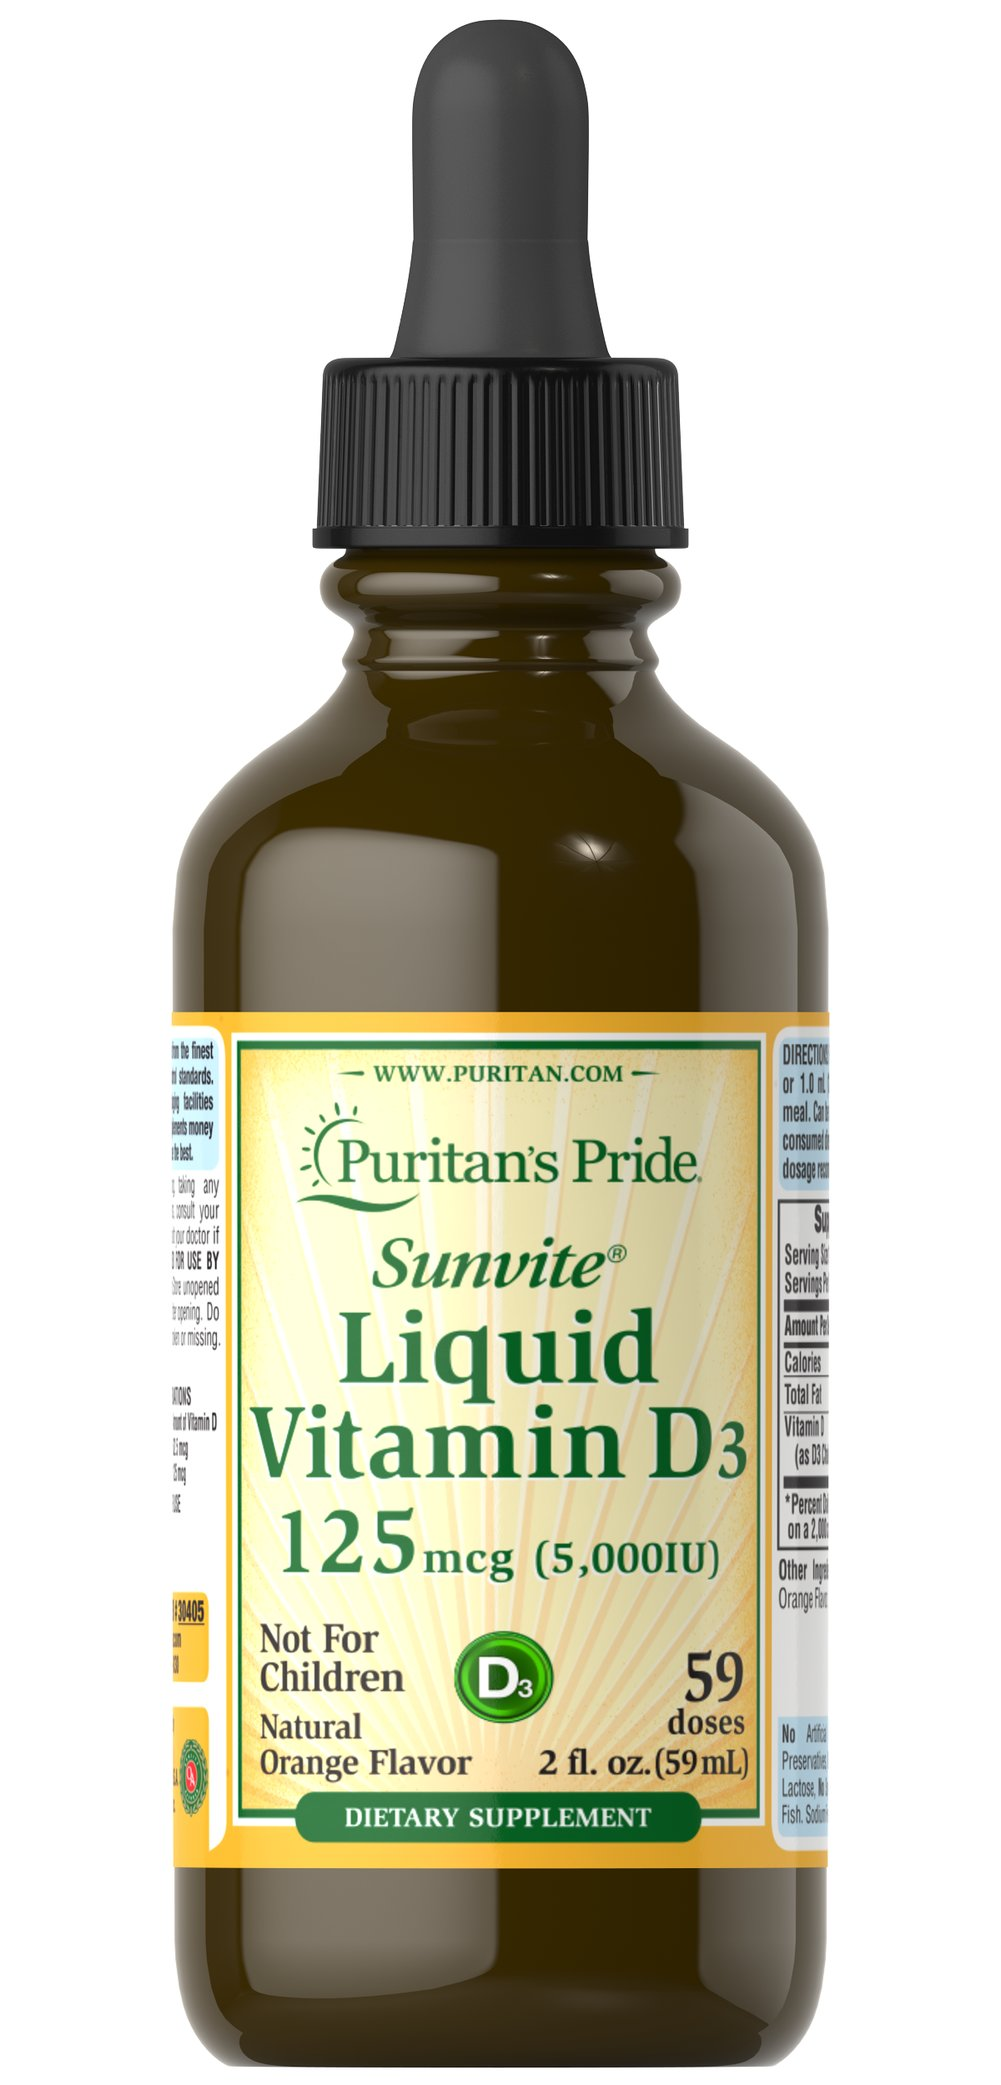 Liquid Vitamin D3 5000 IU <p><strong>Maximum Strength</strong></p><p>Fast acting and great tasting, our natural orange flavored Vitamin D (D3) is easy to use and perfect for those who dislike swallowing tablets or capsules. Vitamin D helps support strong bones and teeth by increasing Calcium absorption and also assists in immune system health.**</p><p>Helps maintain healthy bones in adults.**</p><p>Assists in maintaining a healthy immune syst